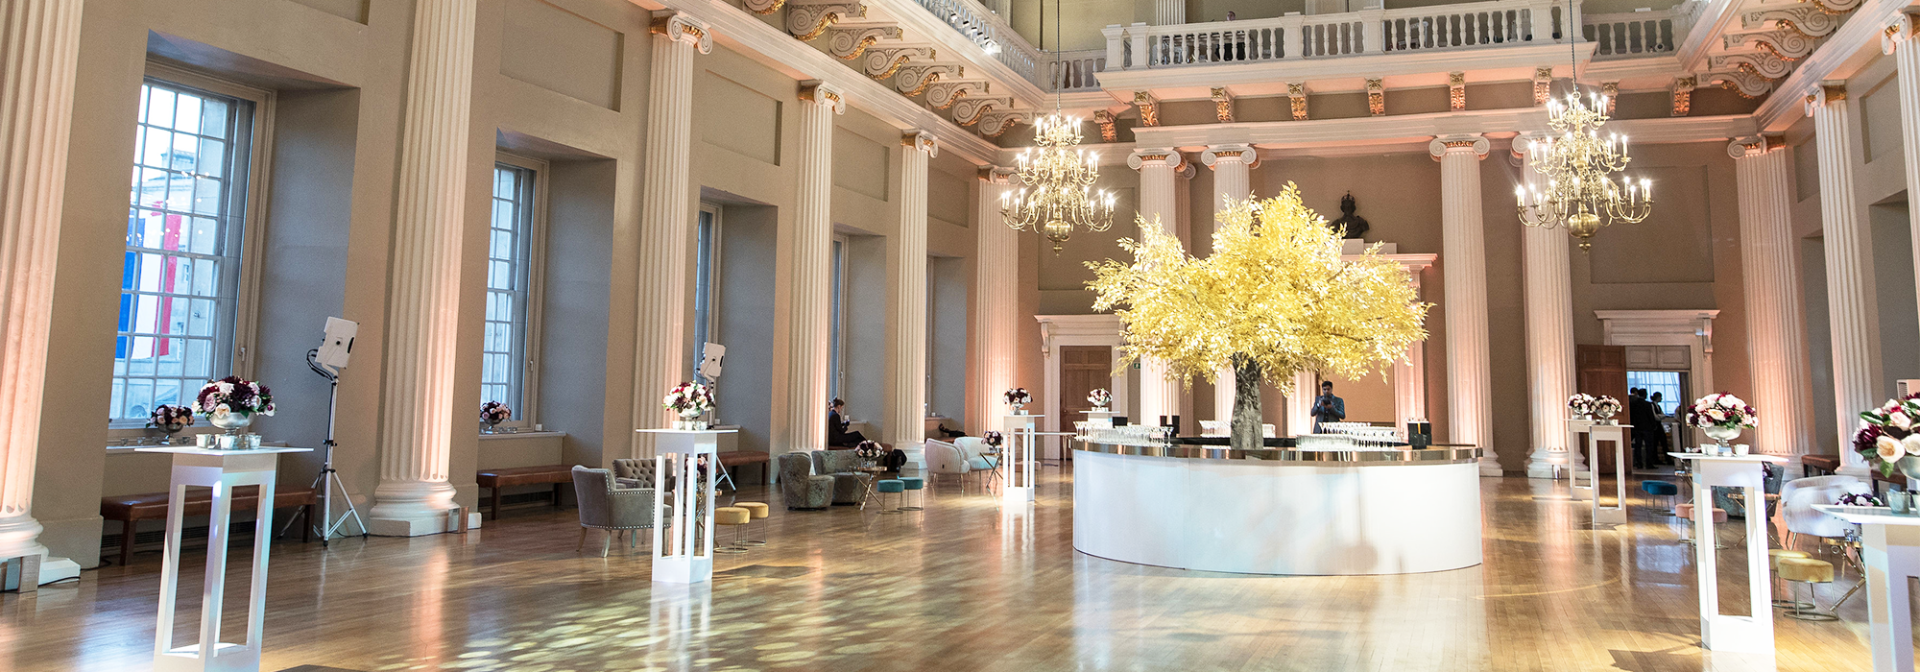 Banqueting House - Header Image - Gallery 5.png